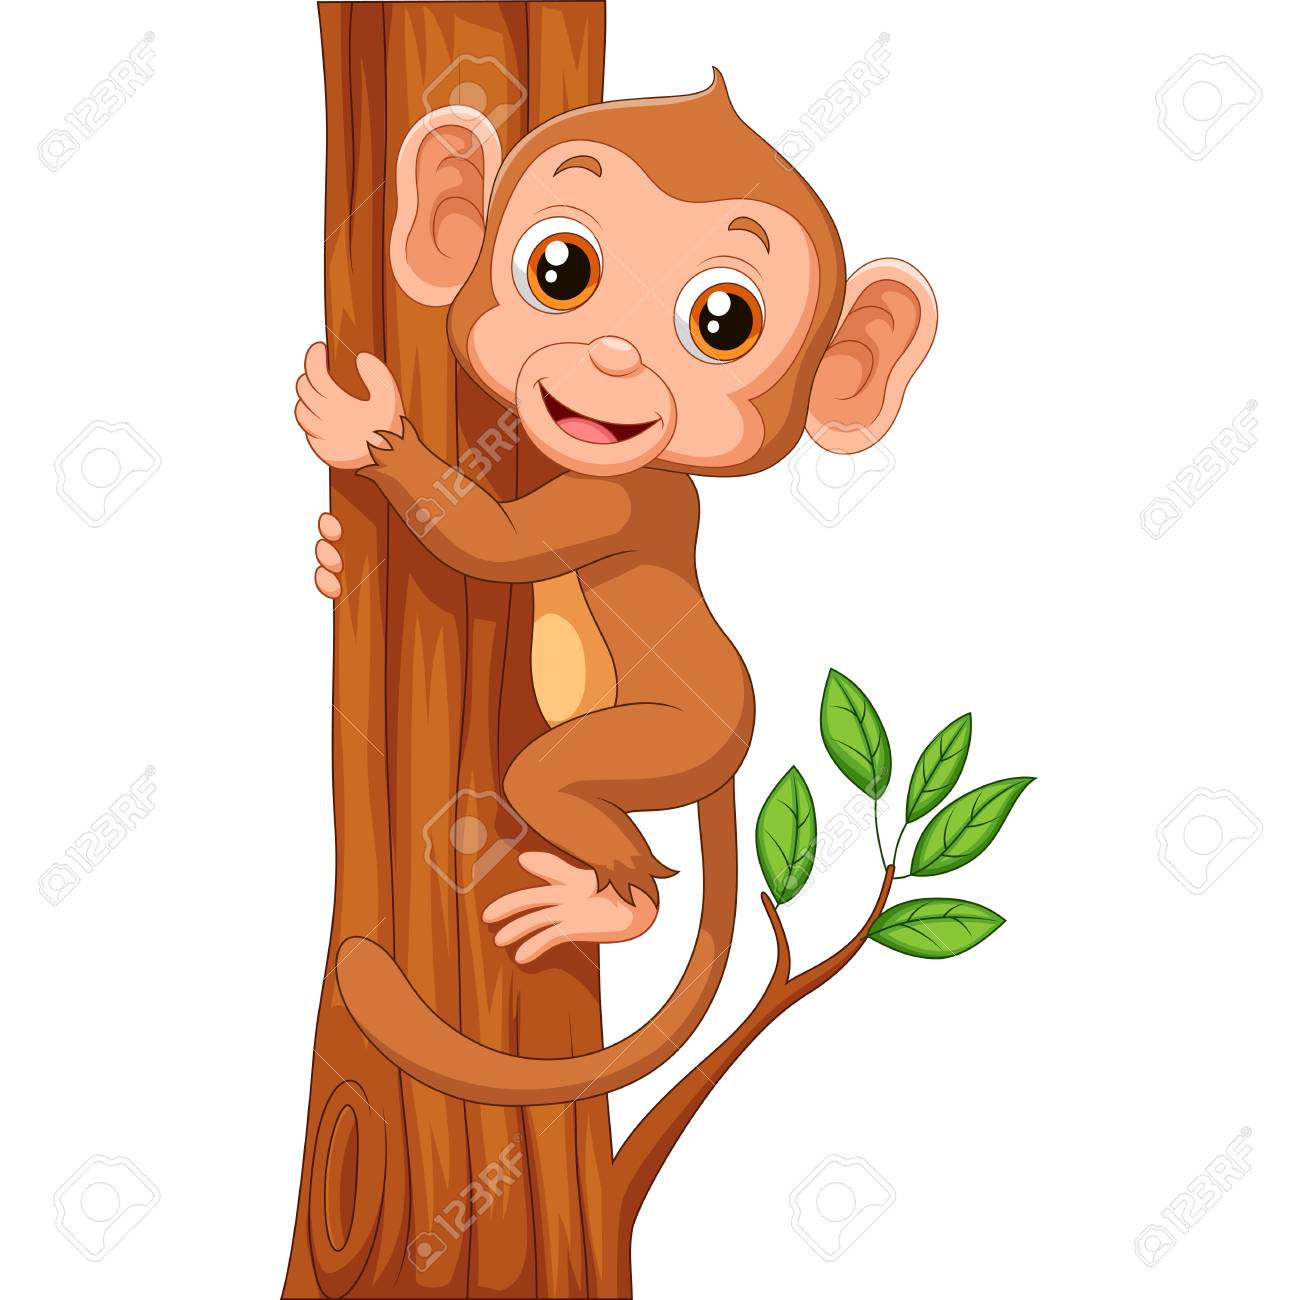 Monkey Cartoon Free Photo Png Clipart - Cartoon Monkey Hanging From Tree -  786x1027 PNG Download - PNGkit